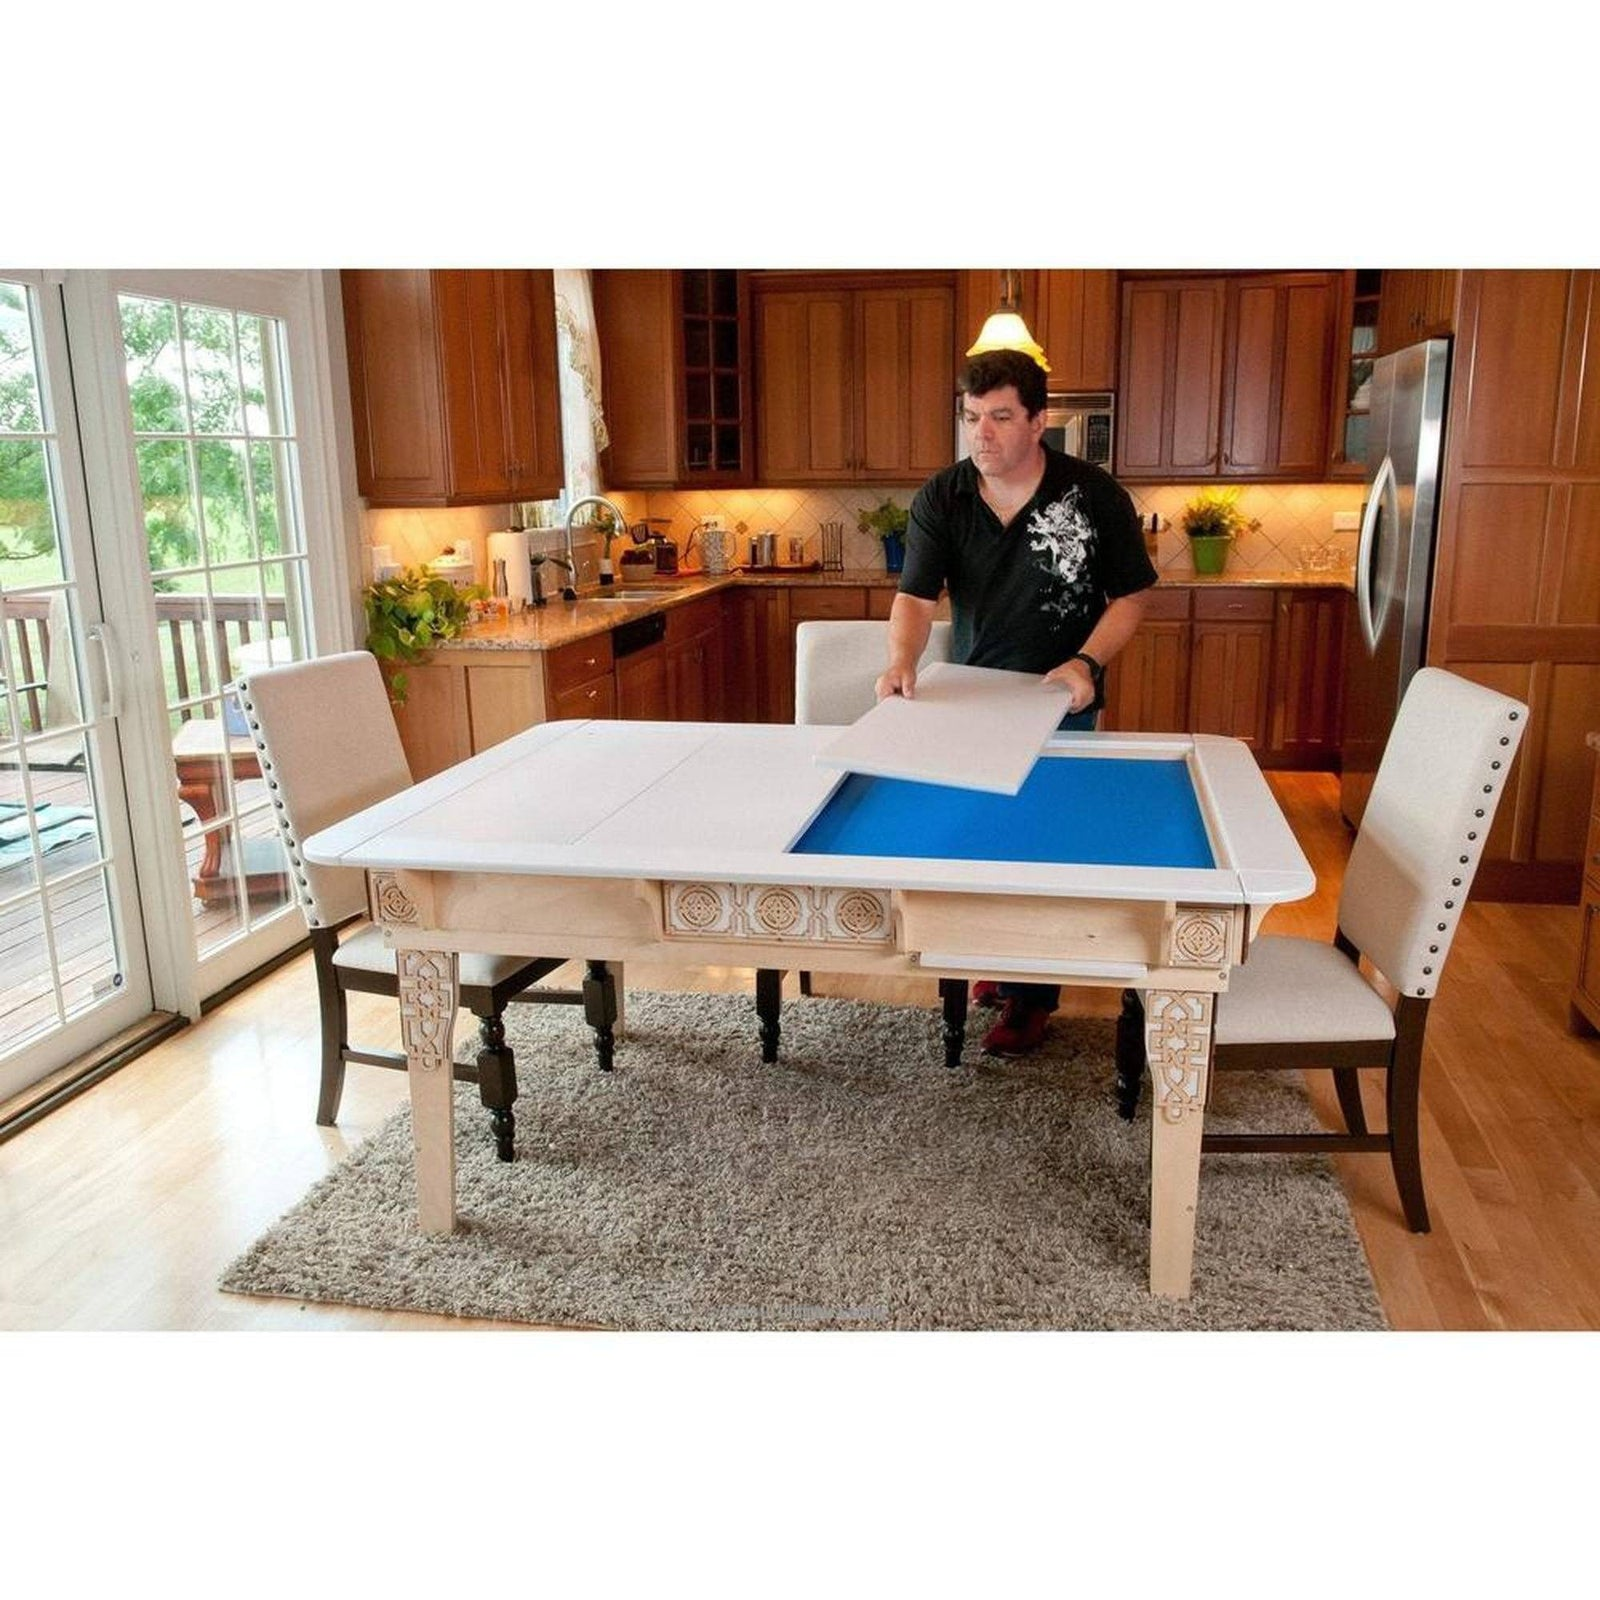 4.4 Table Top Covers/Pull Out Desks - fits Elite Series and Warhammer Special Edition - Table of Ultimate Gaming